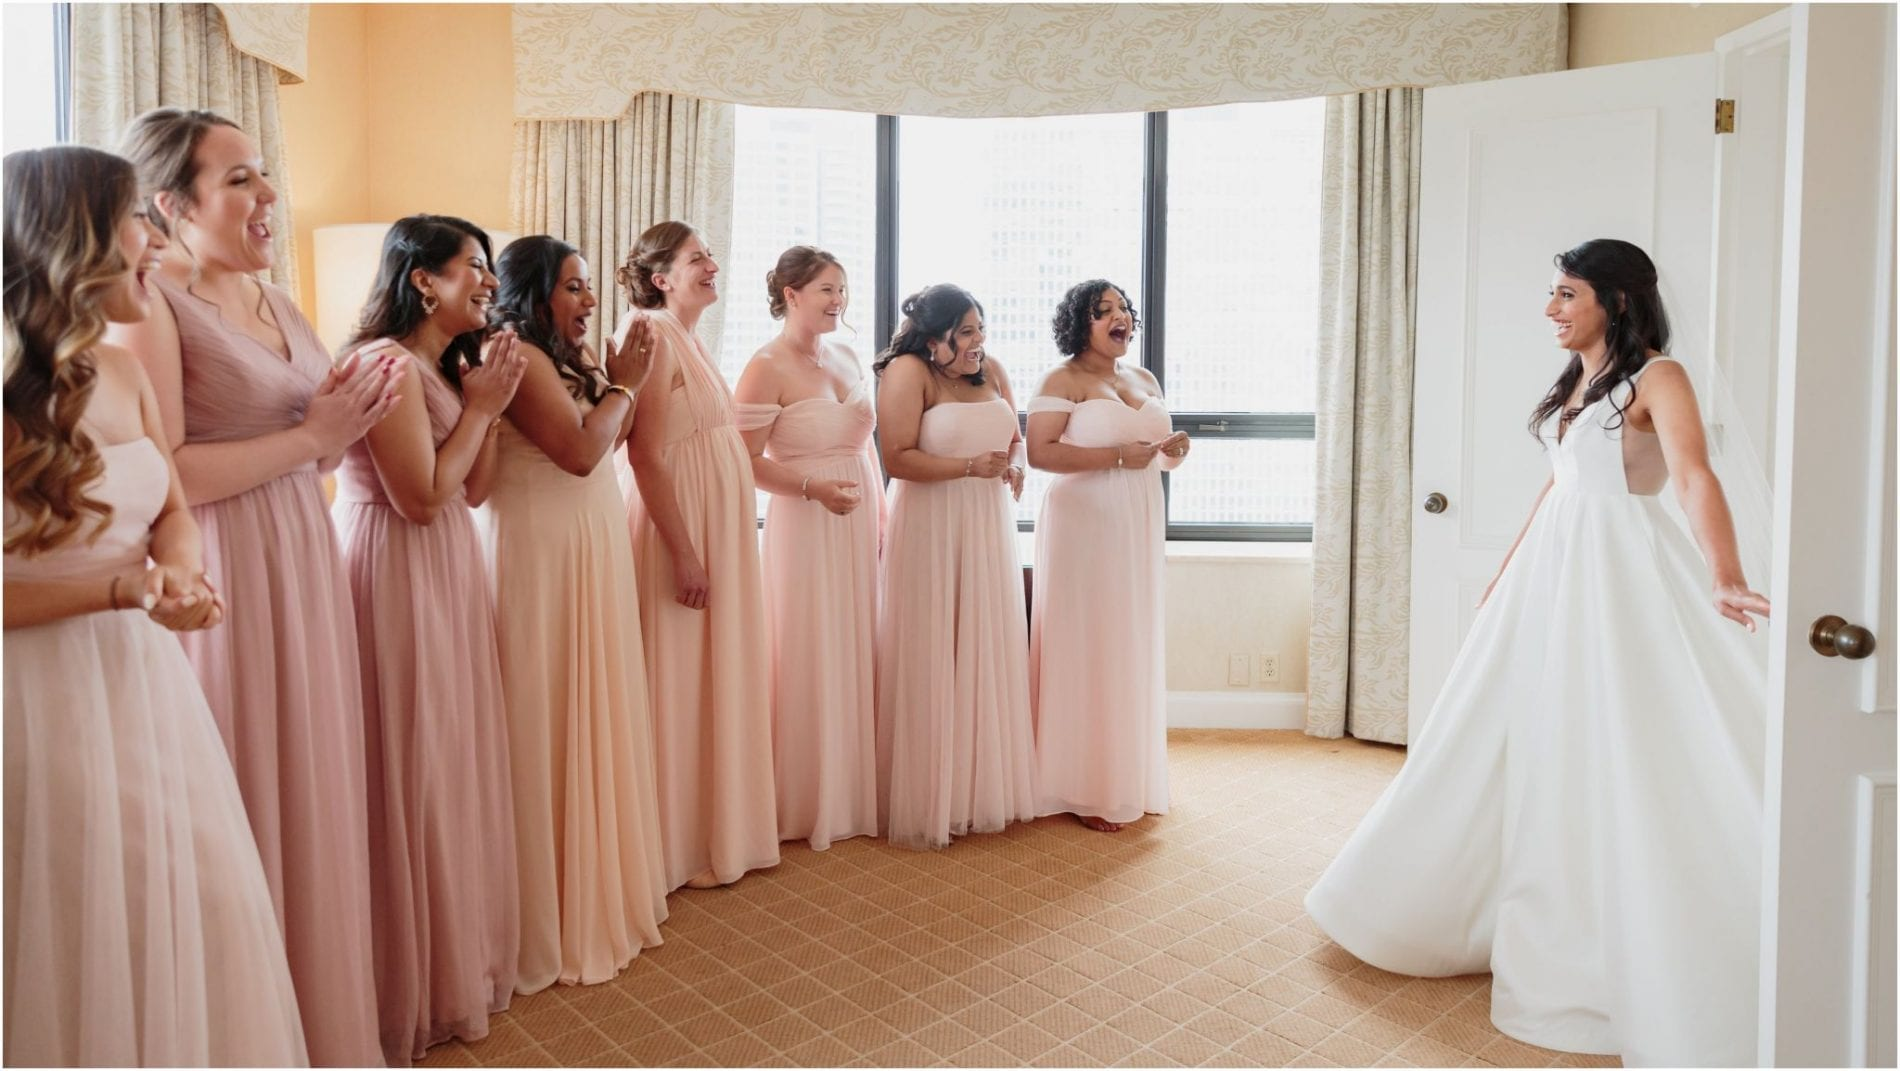 Ritz Carlton Chicago Wedding - Wes Craft Photography